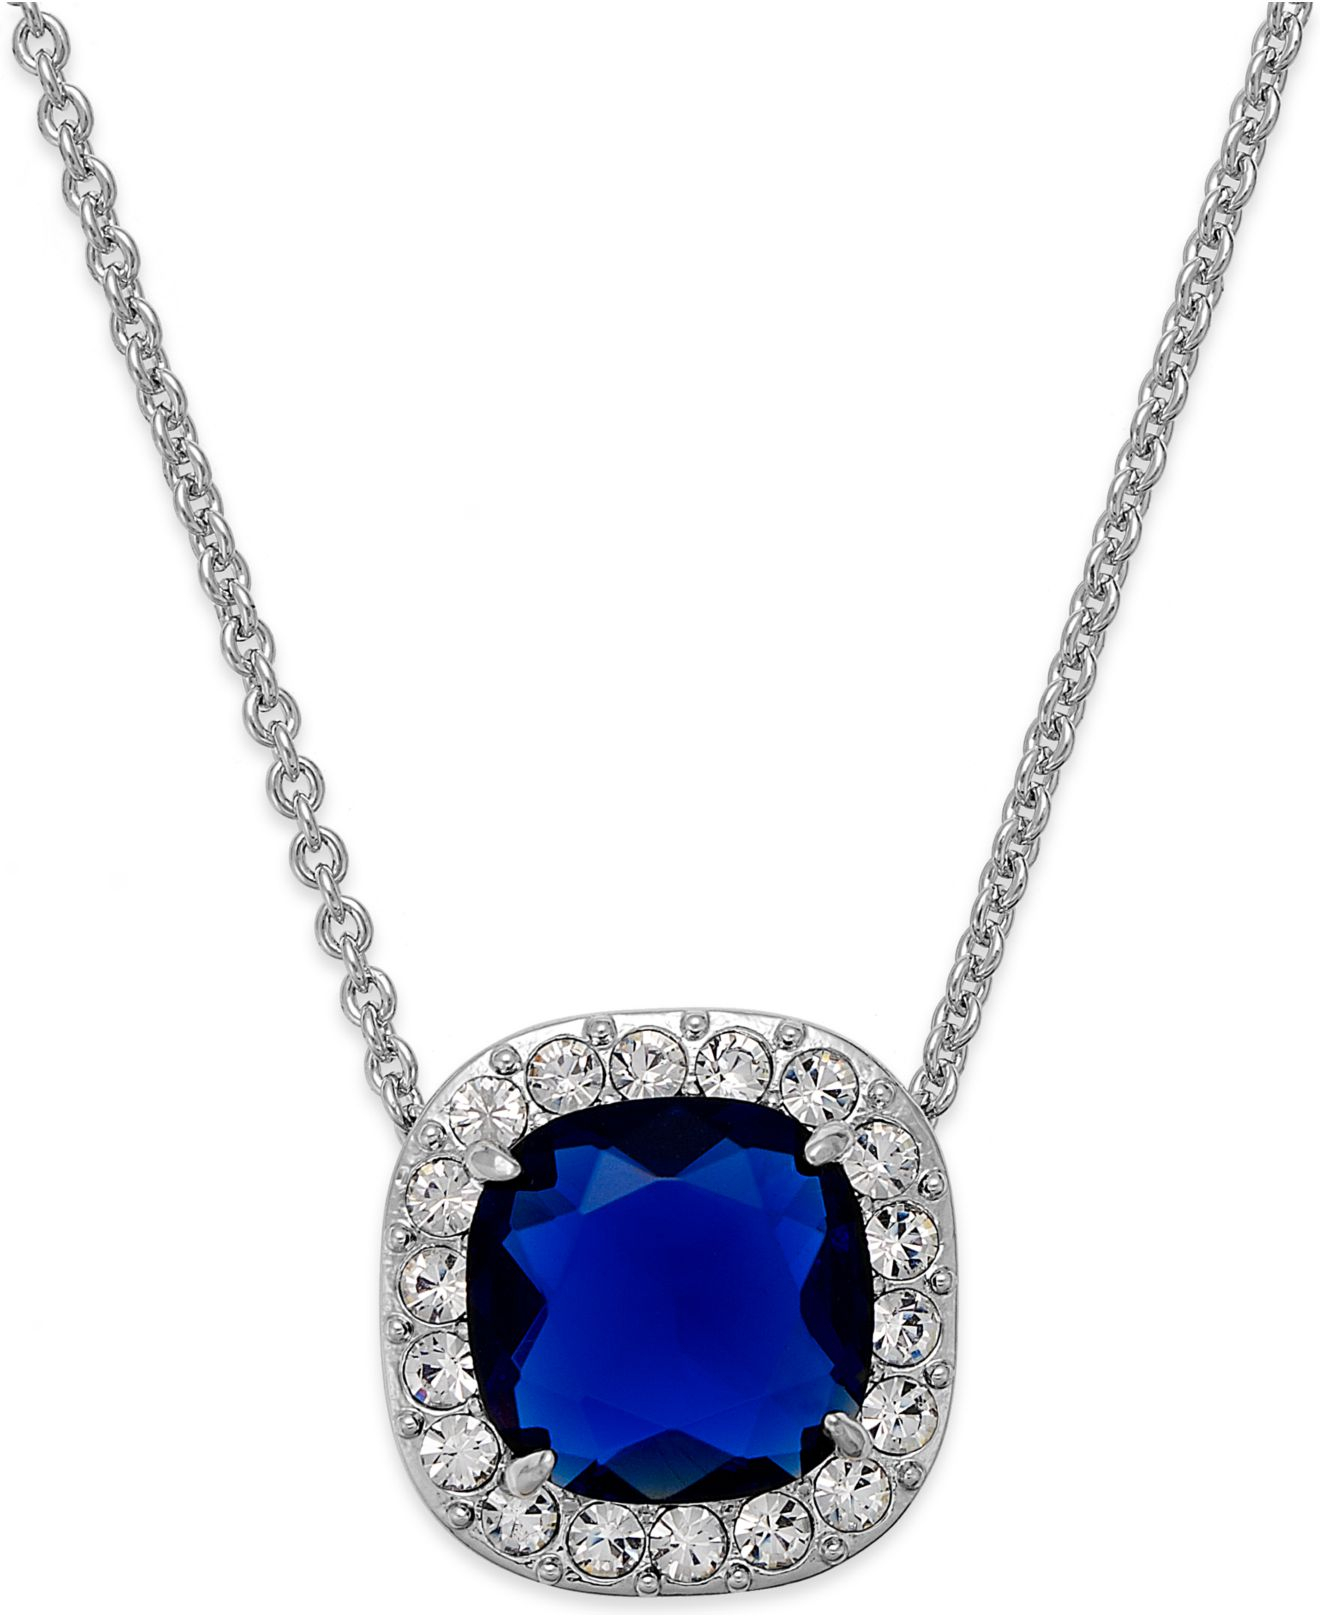 Blue stone silver necklace image of necklace new silver necklace blue stone jewellry s site aloadofball Choice Image